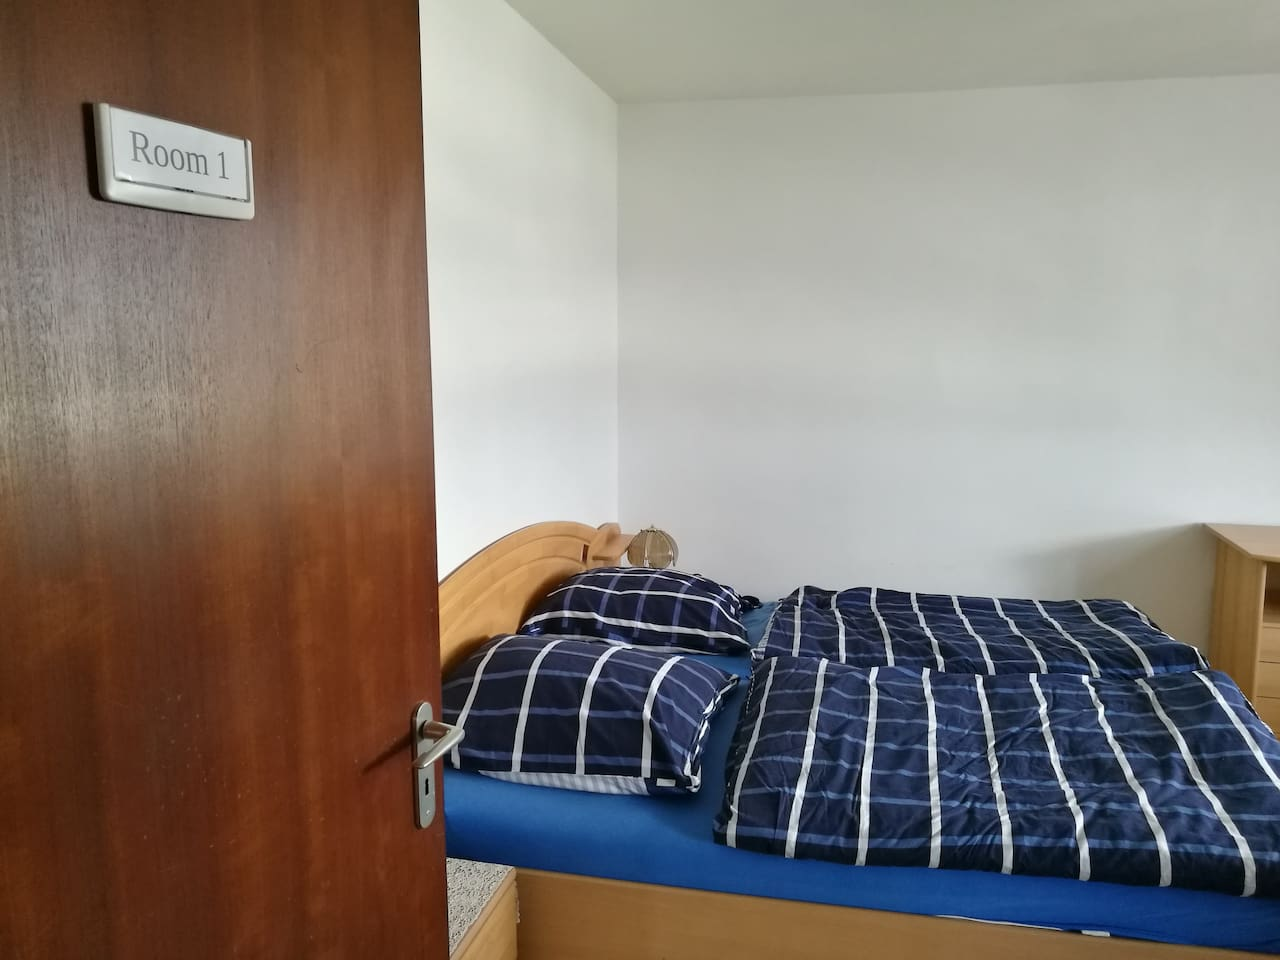 Welcome to your new bedroom in Nürnberg